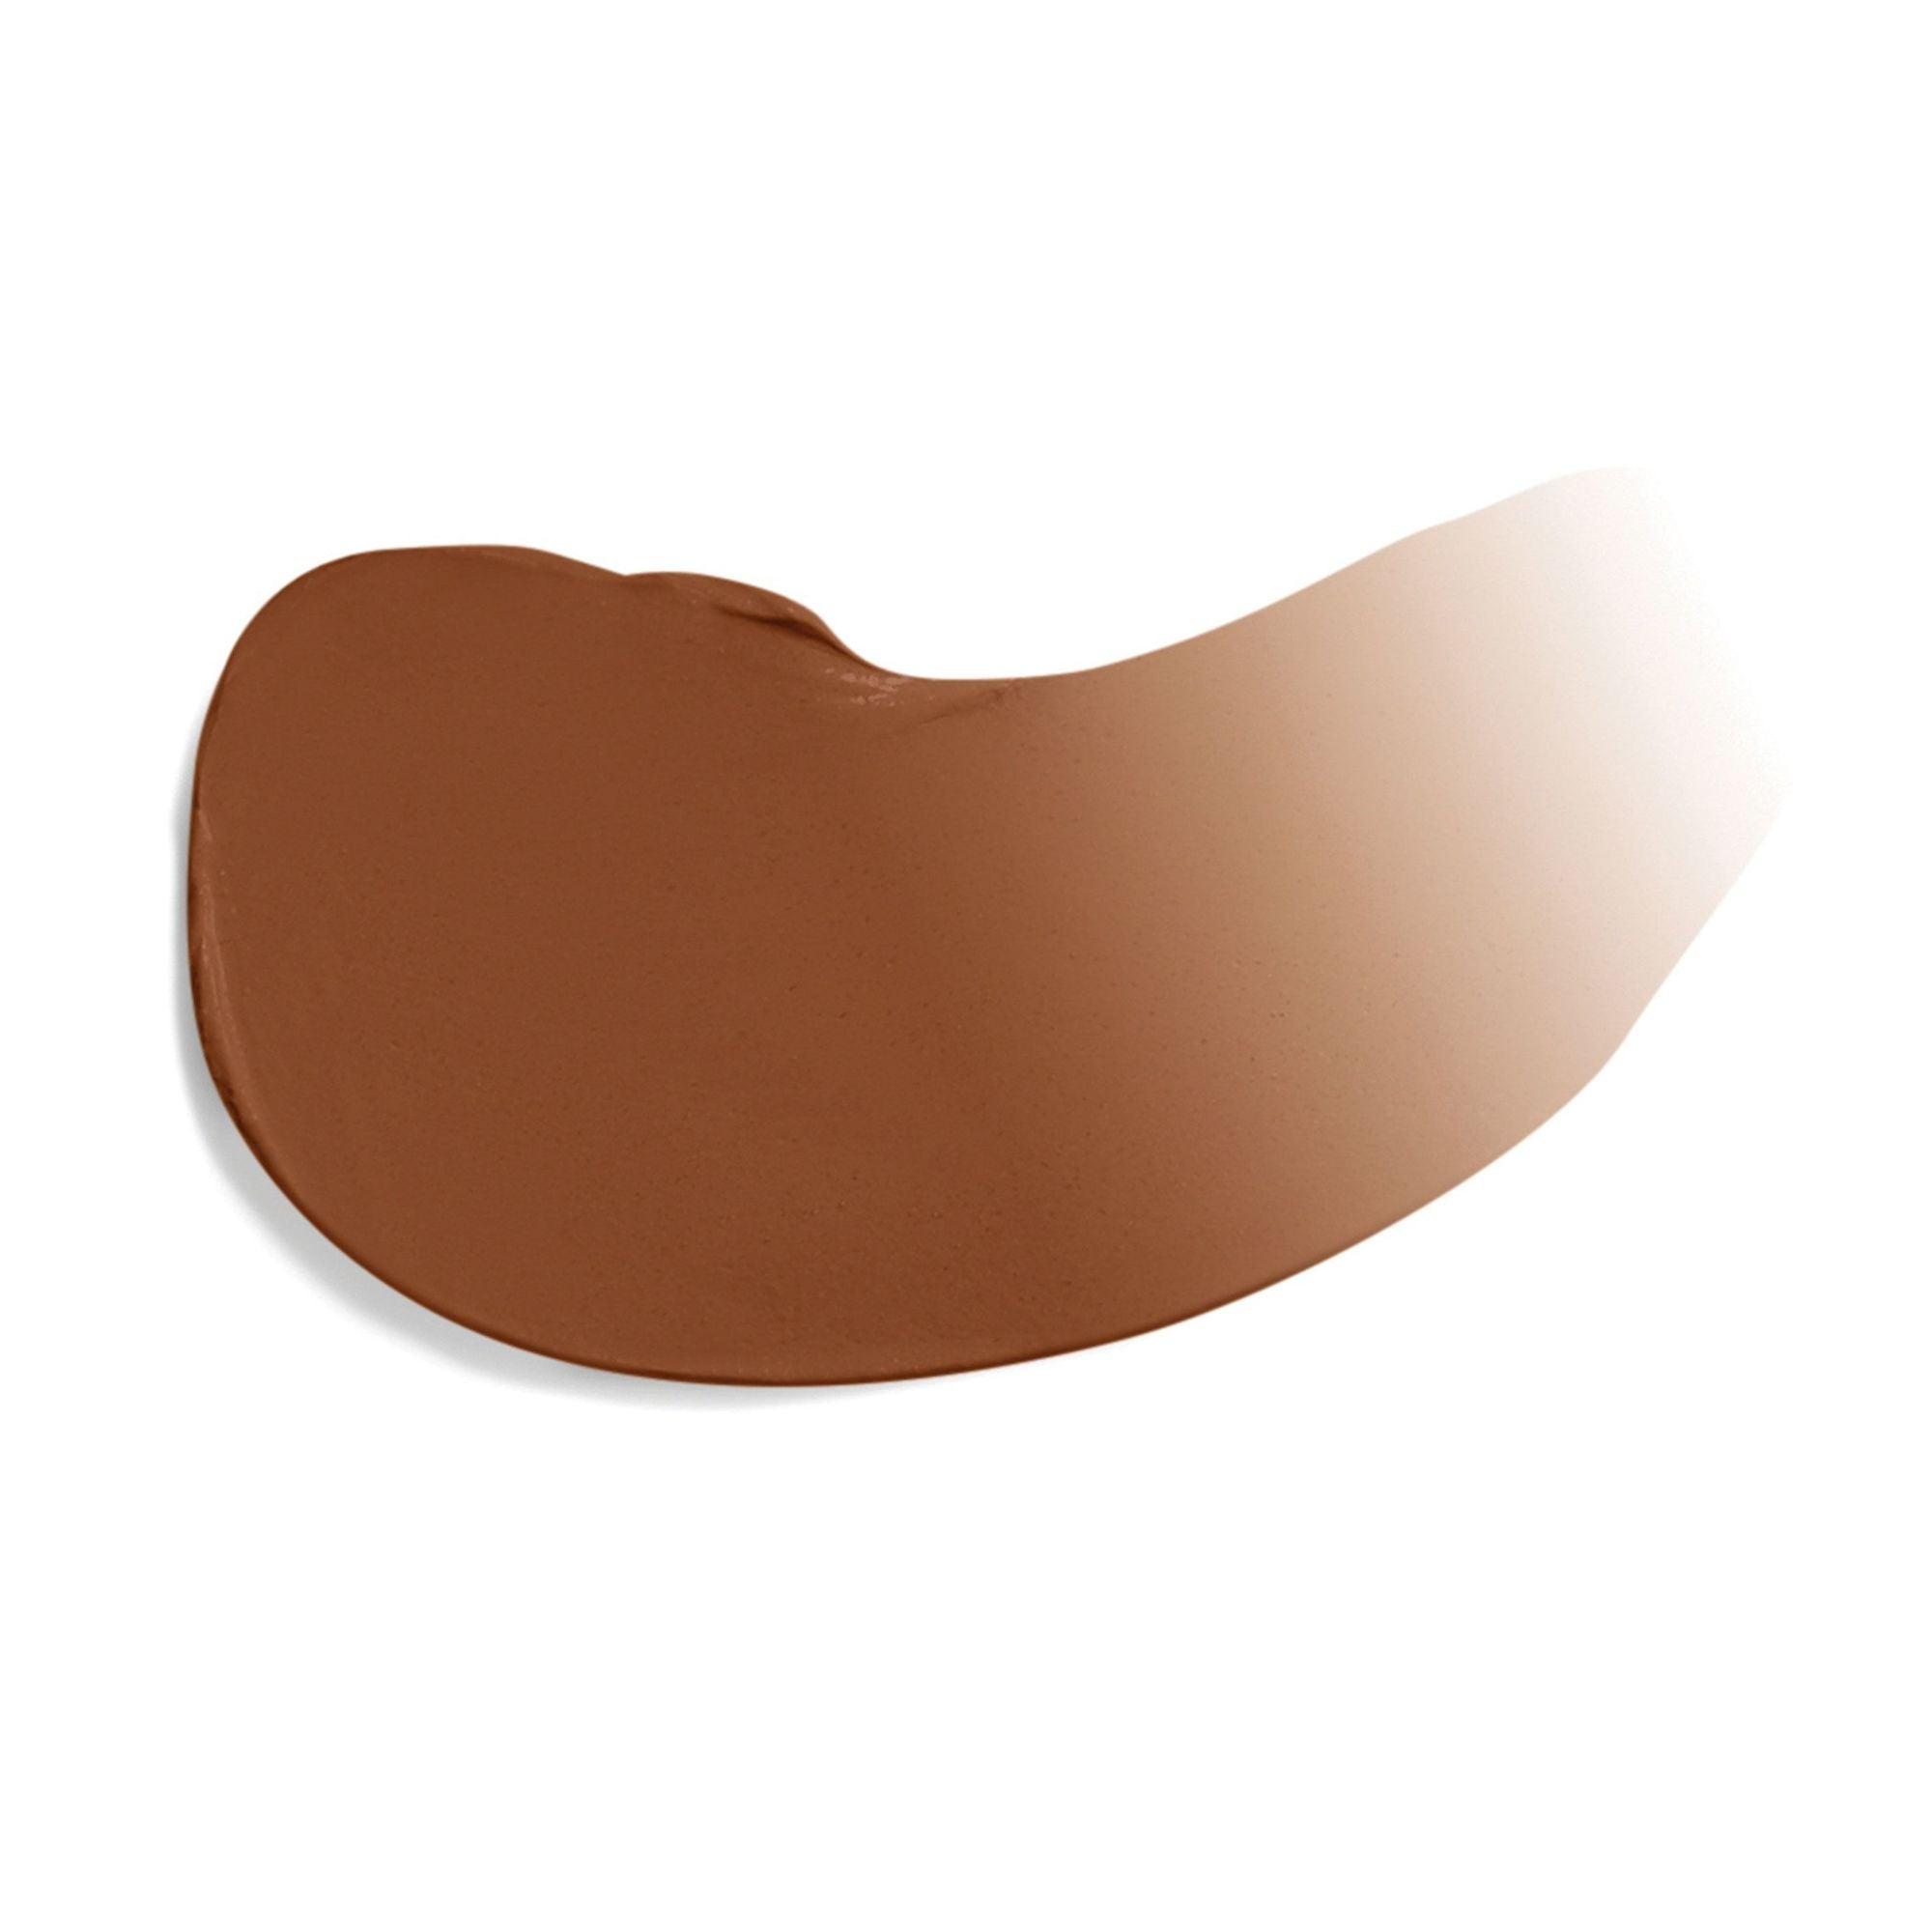 Dream Tint® Tinted Moisturizer SPF 15 | Jane Iredale